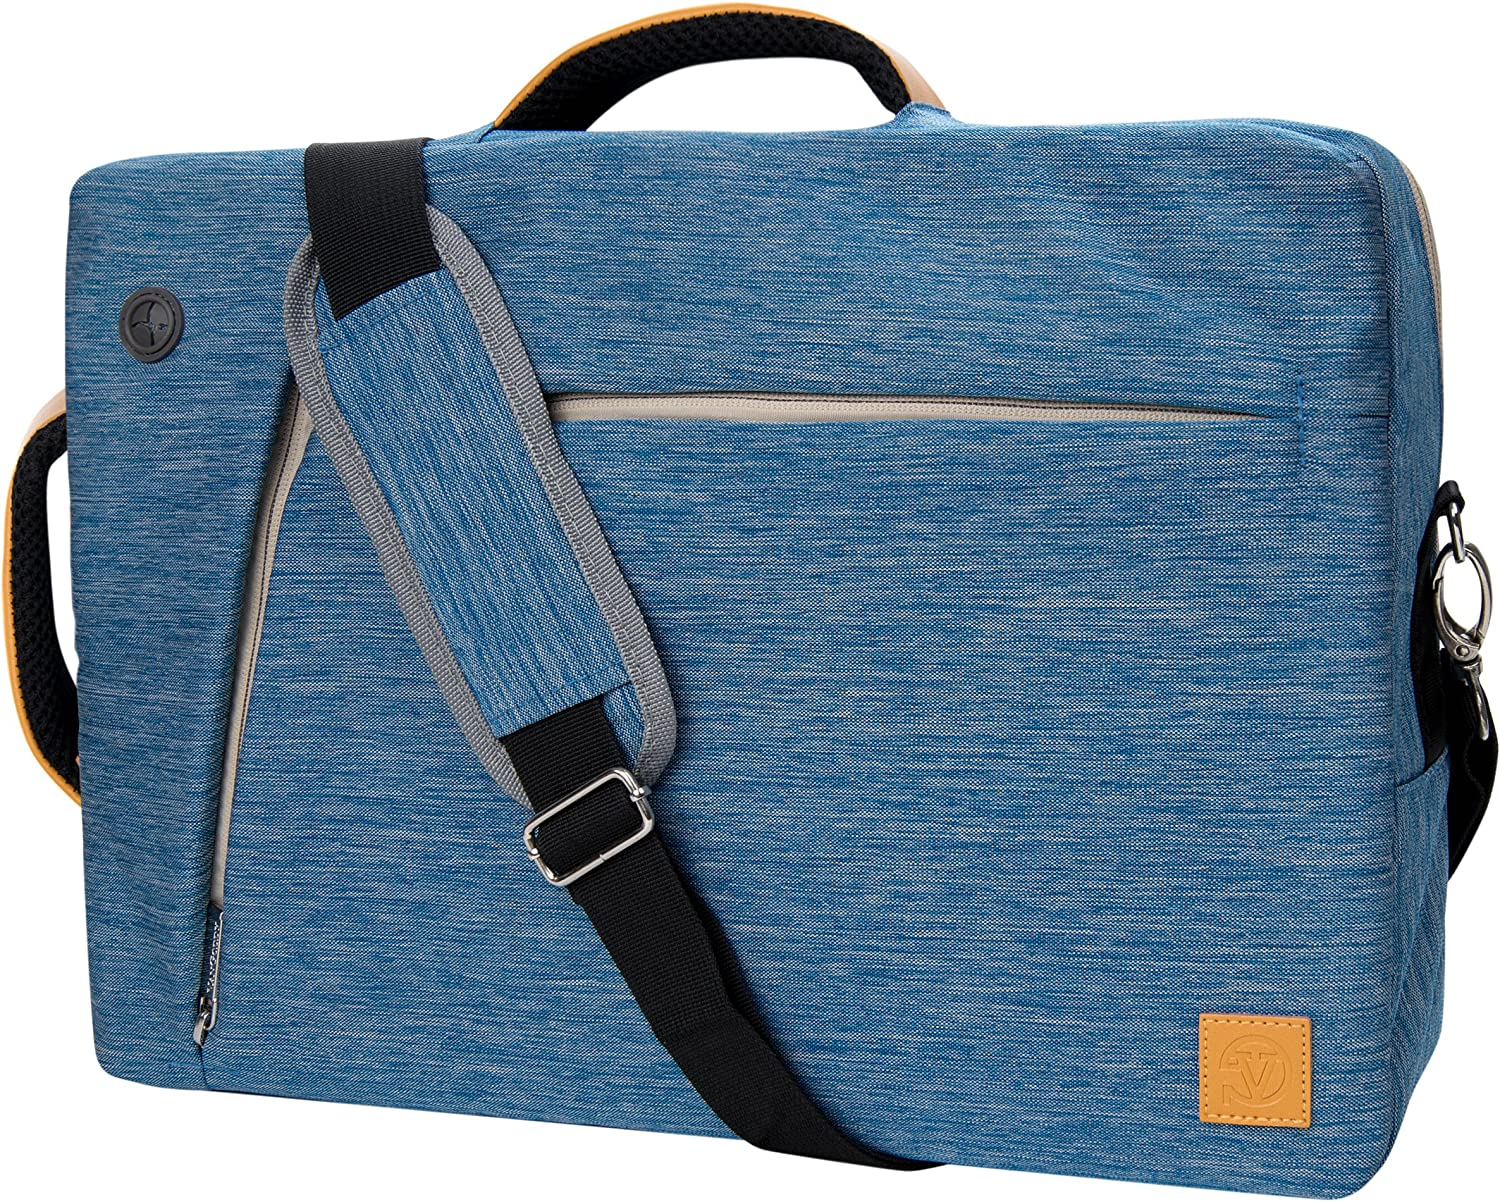 Laptop Bag for Acer Swift 1 3 5 7, Spin 1 5 7, Chromebook, Iconia One, Switch